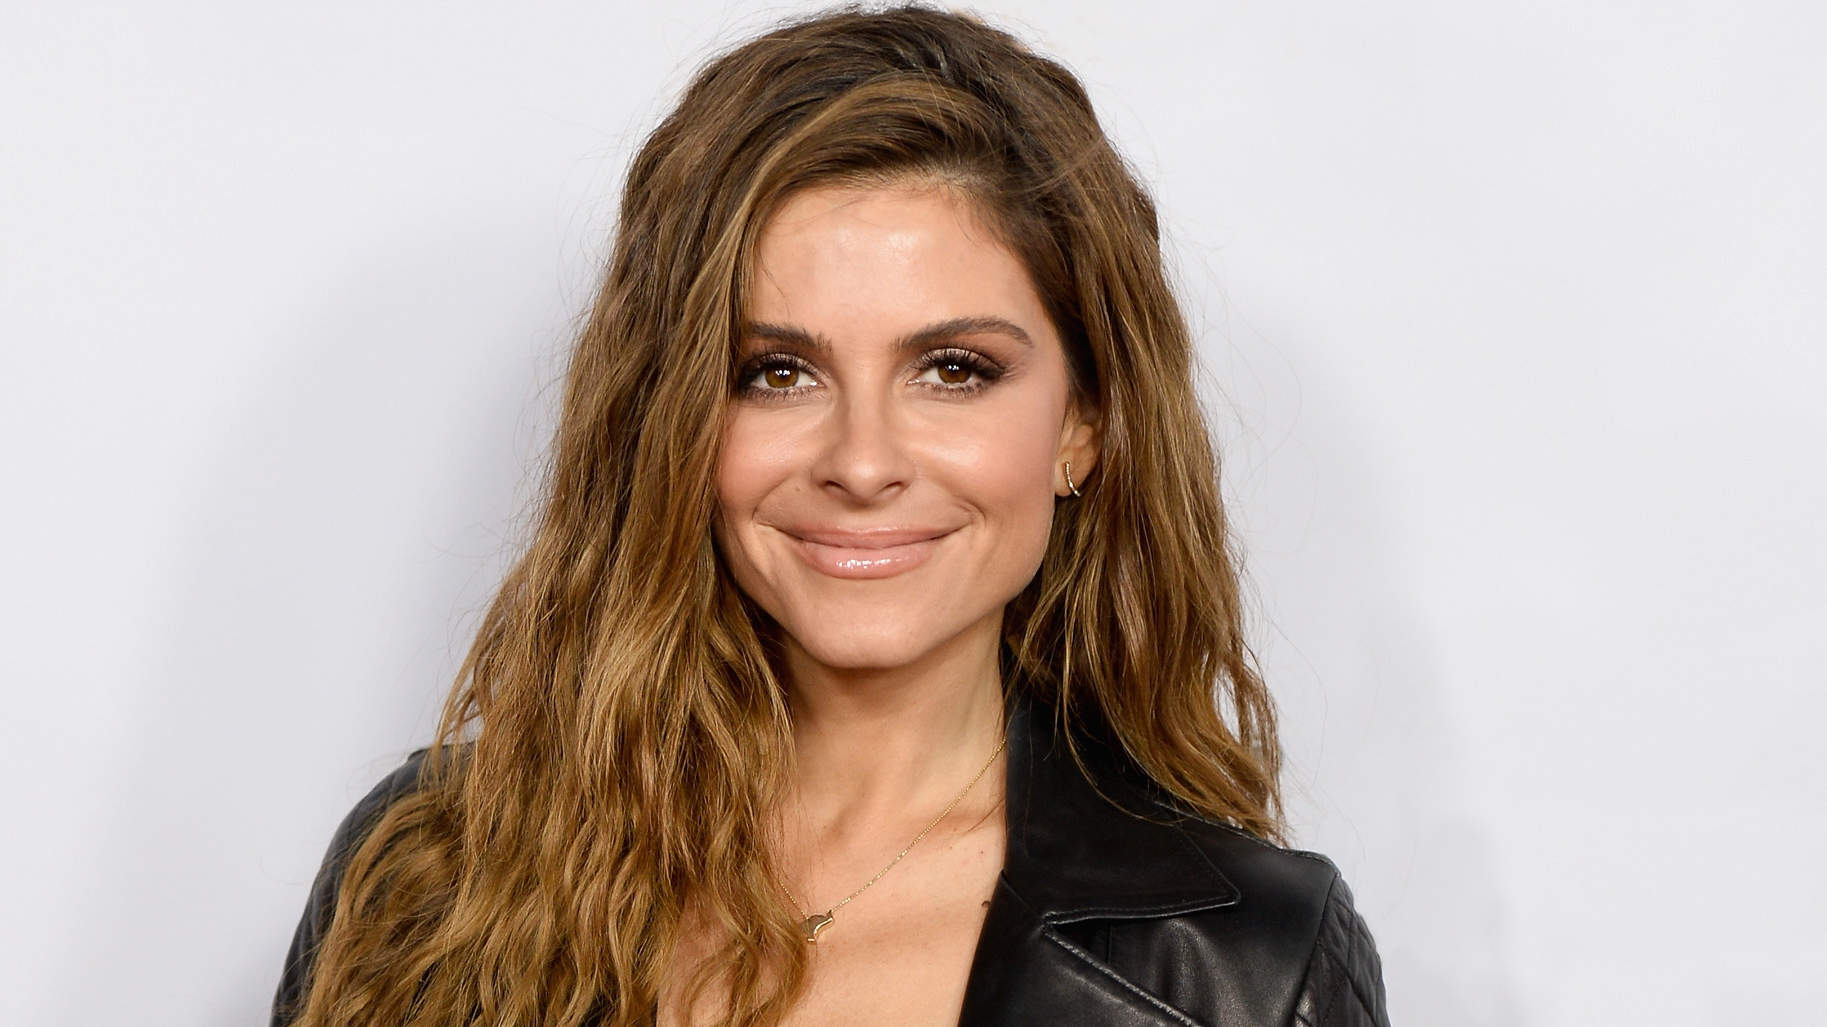 Maria Menounos Encourages 'We Are Human Beings, Not Human Doings' in Relaxed Selfie 6 Weeks After Brain Tumor Reveal